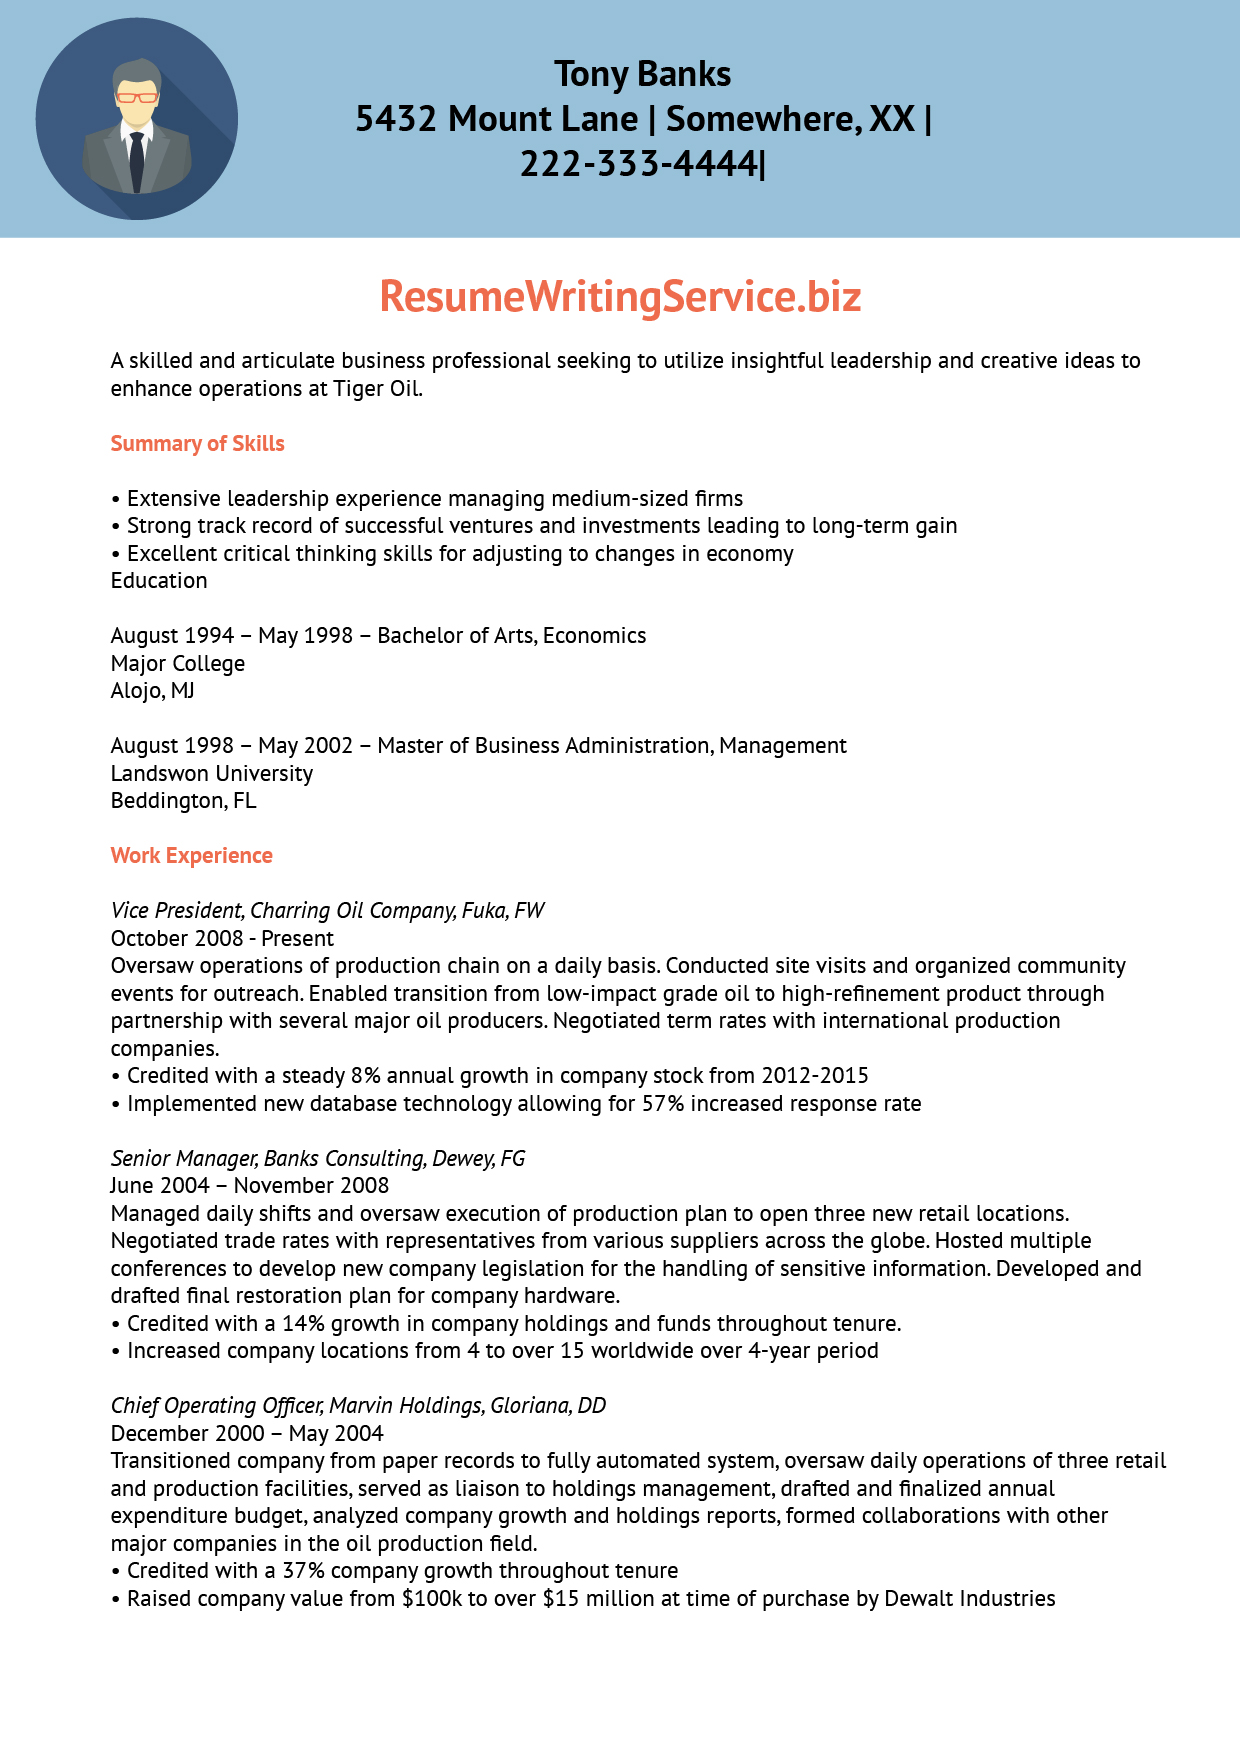 resume writing services on long island federal resume writer certified federal resume writing resume sample resume